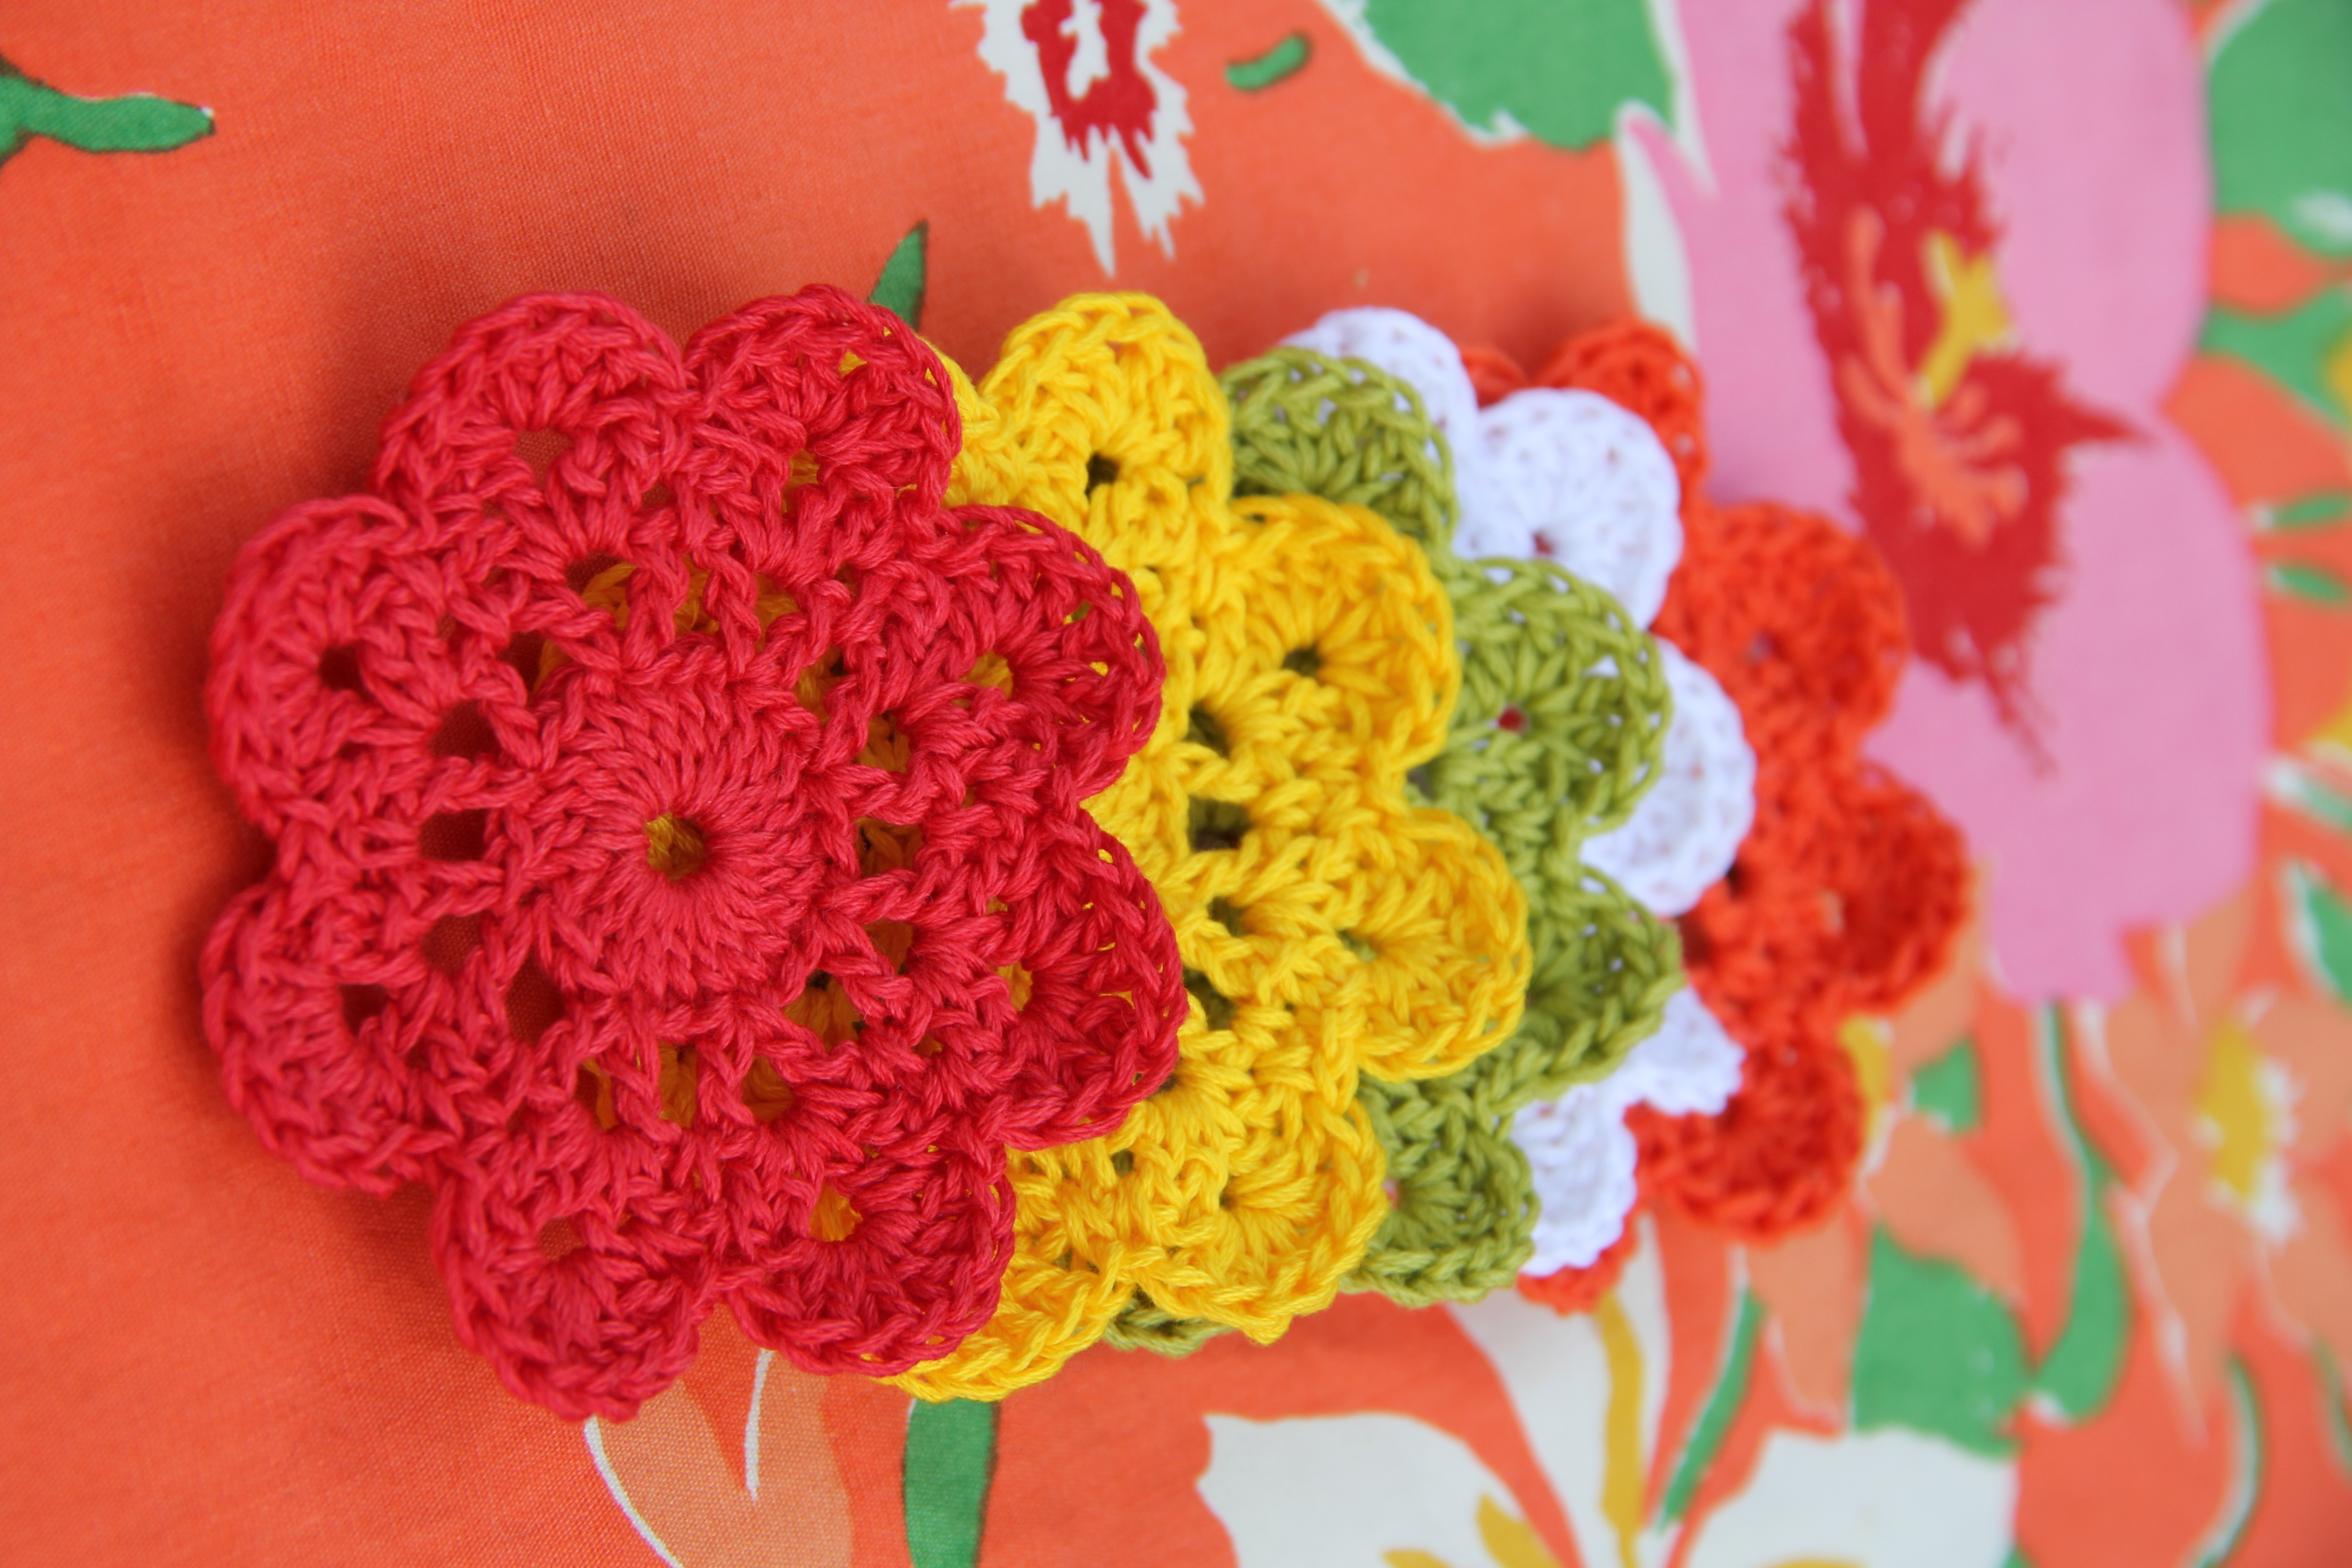 Free Online Crochet Patterns For Coasters : flower coasters - DriverLayer Search Engine